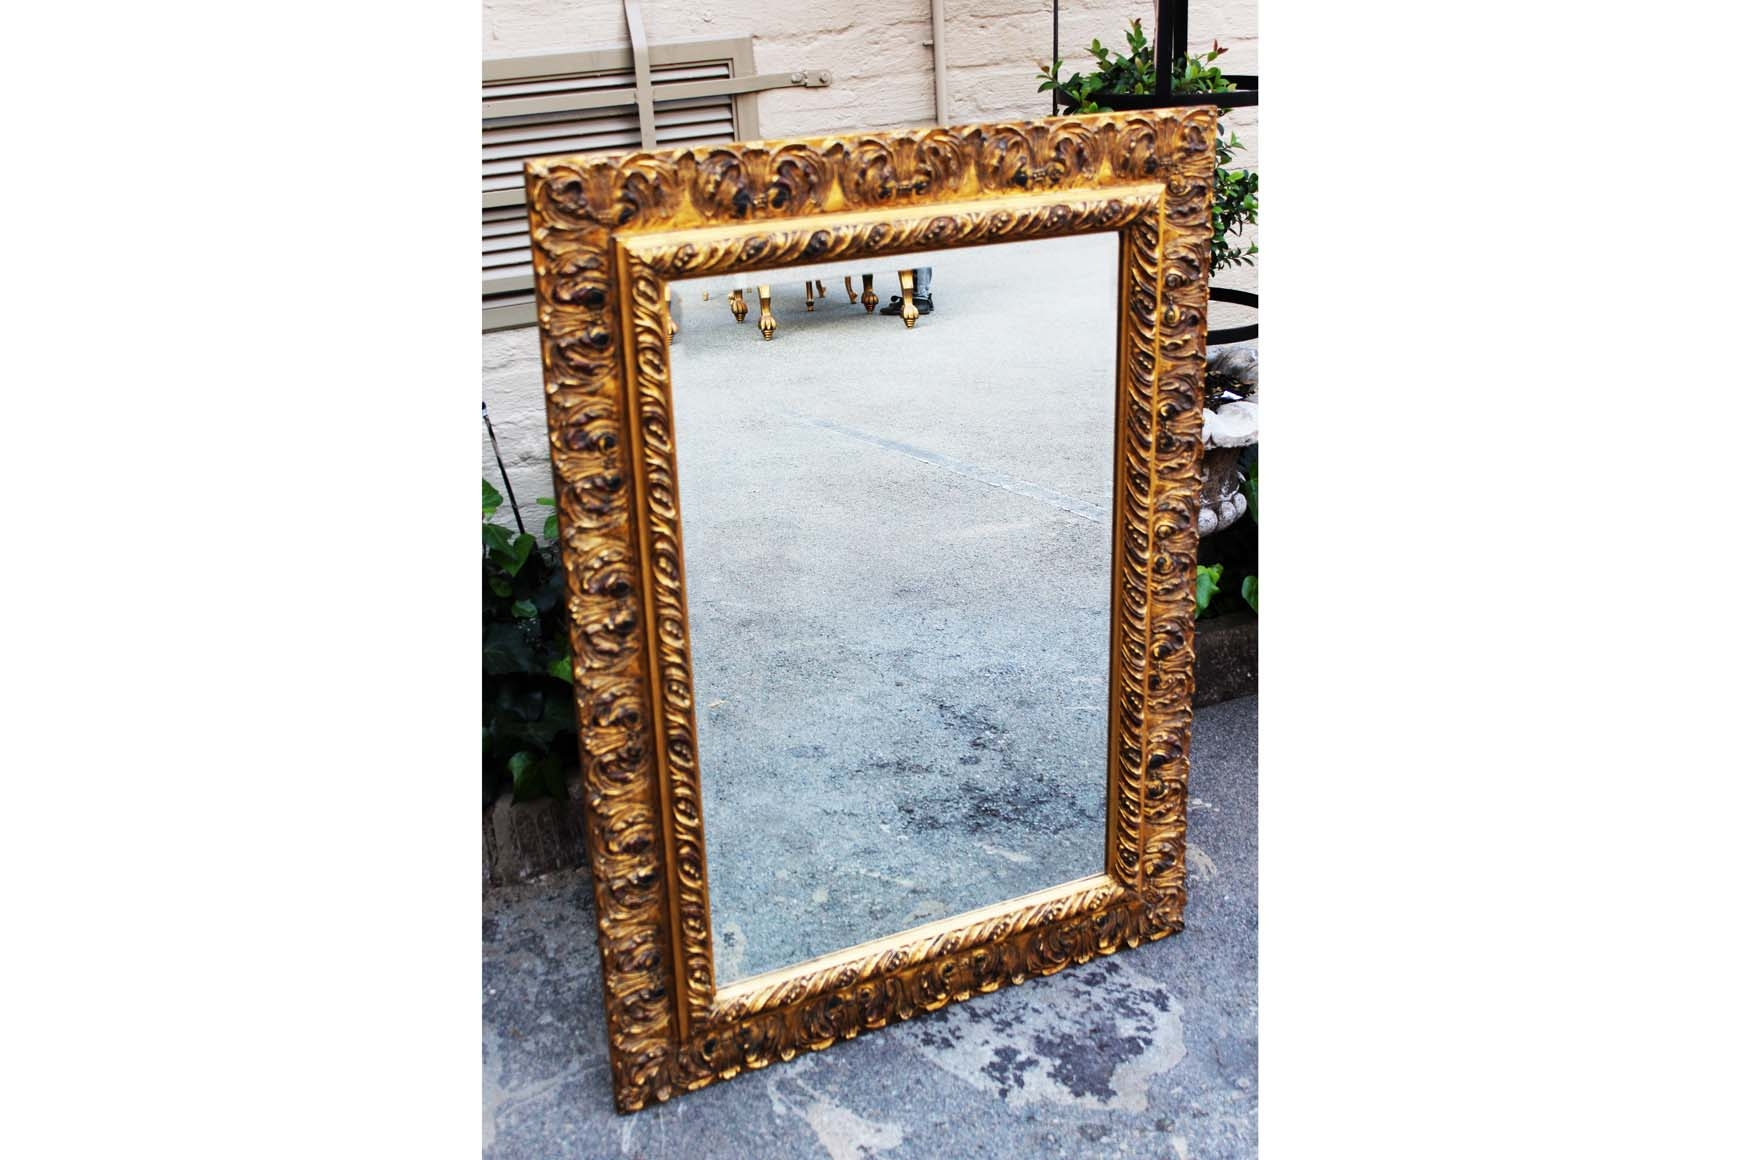 Antique Gilt Framed Bevelled Mirror Ziora Intended For Gilt Edged Mirrors (Image 5 of 15)